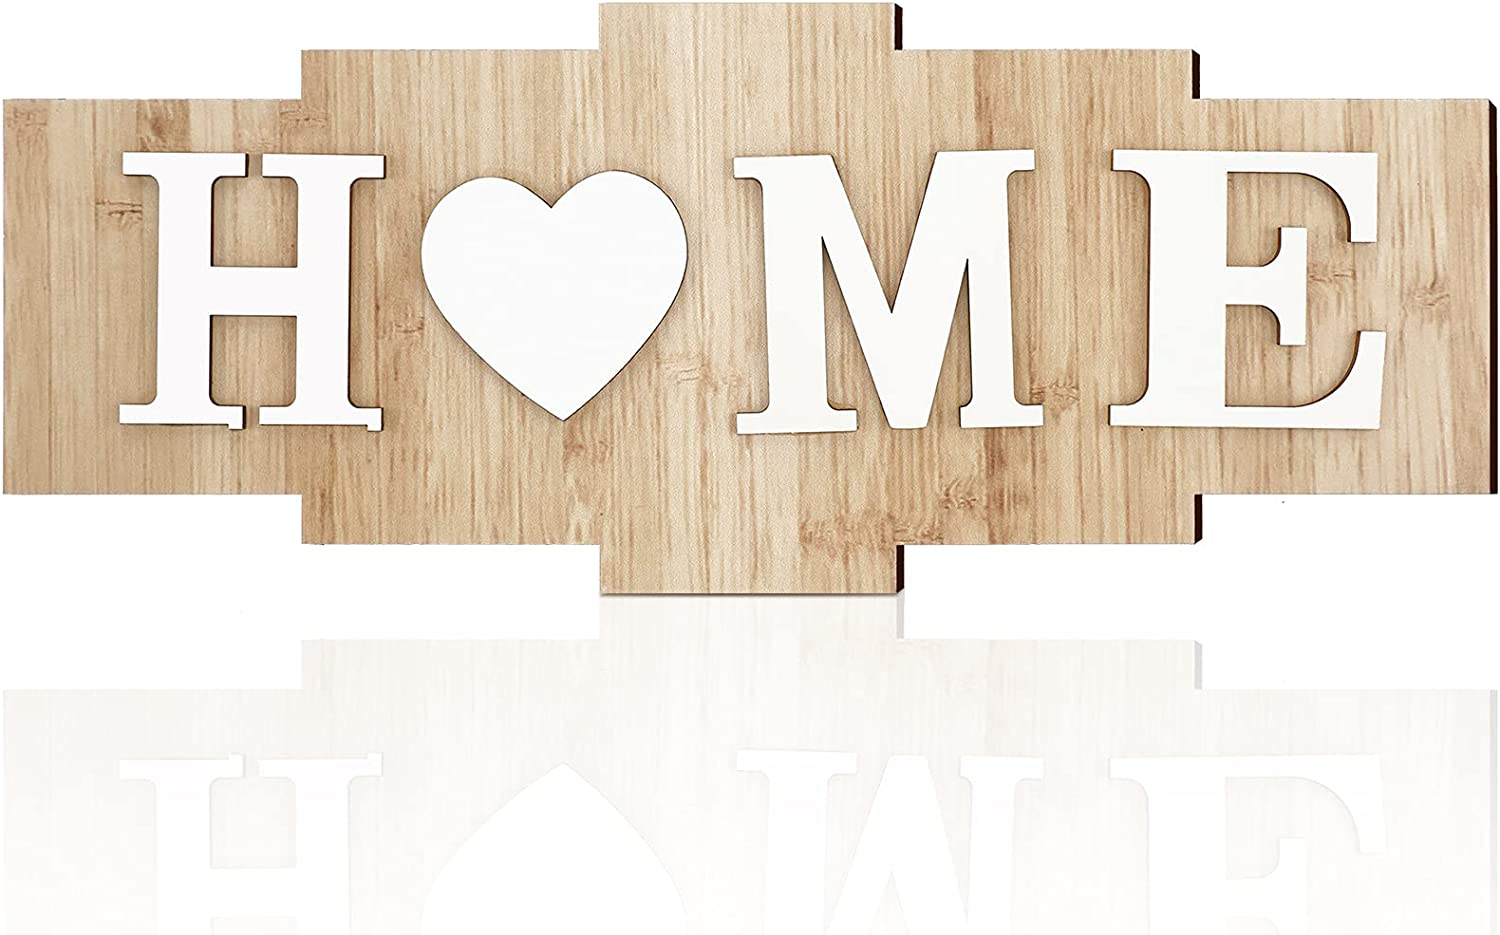 Home Signs for Home Decor, Wood Home Sign, Home Heart Rustic Wall Decor, Sweet Farmhouse Wooden Wall Sign Decoration Wood Letters Ornament for Bedroom, Living Room, Wedding Decor (Natural Color)